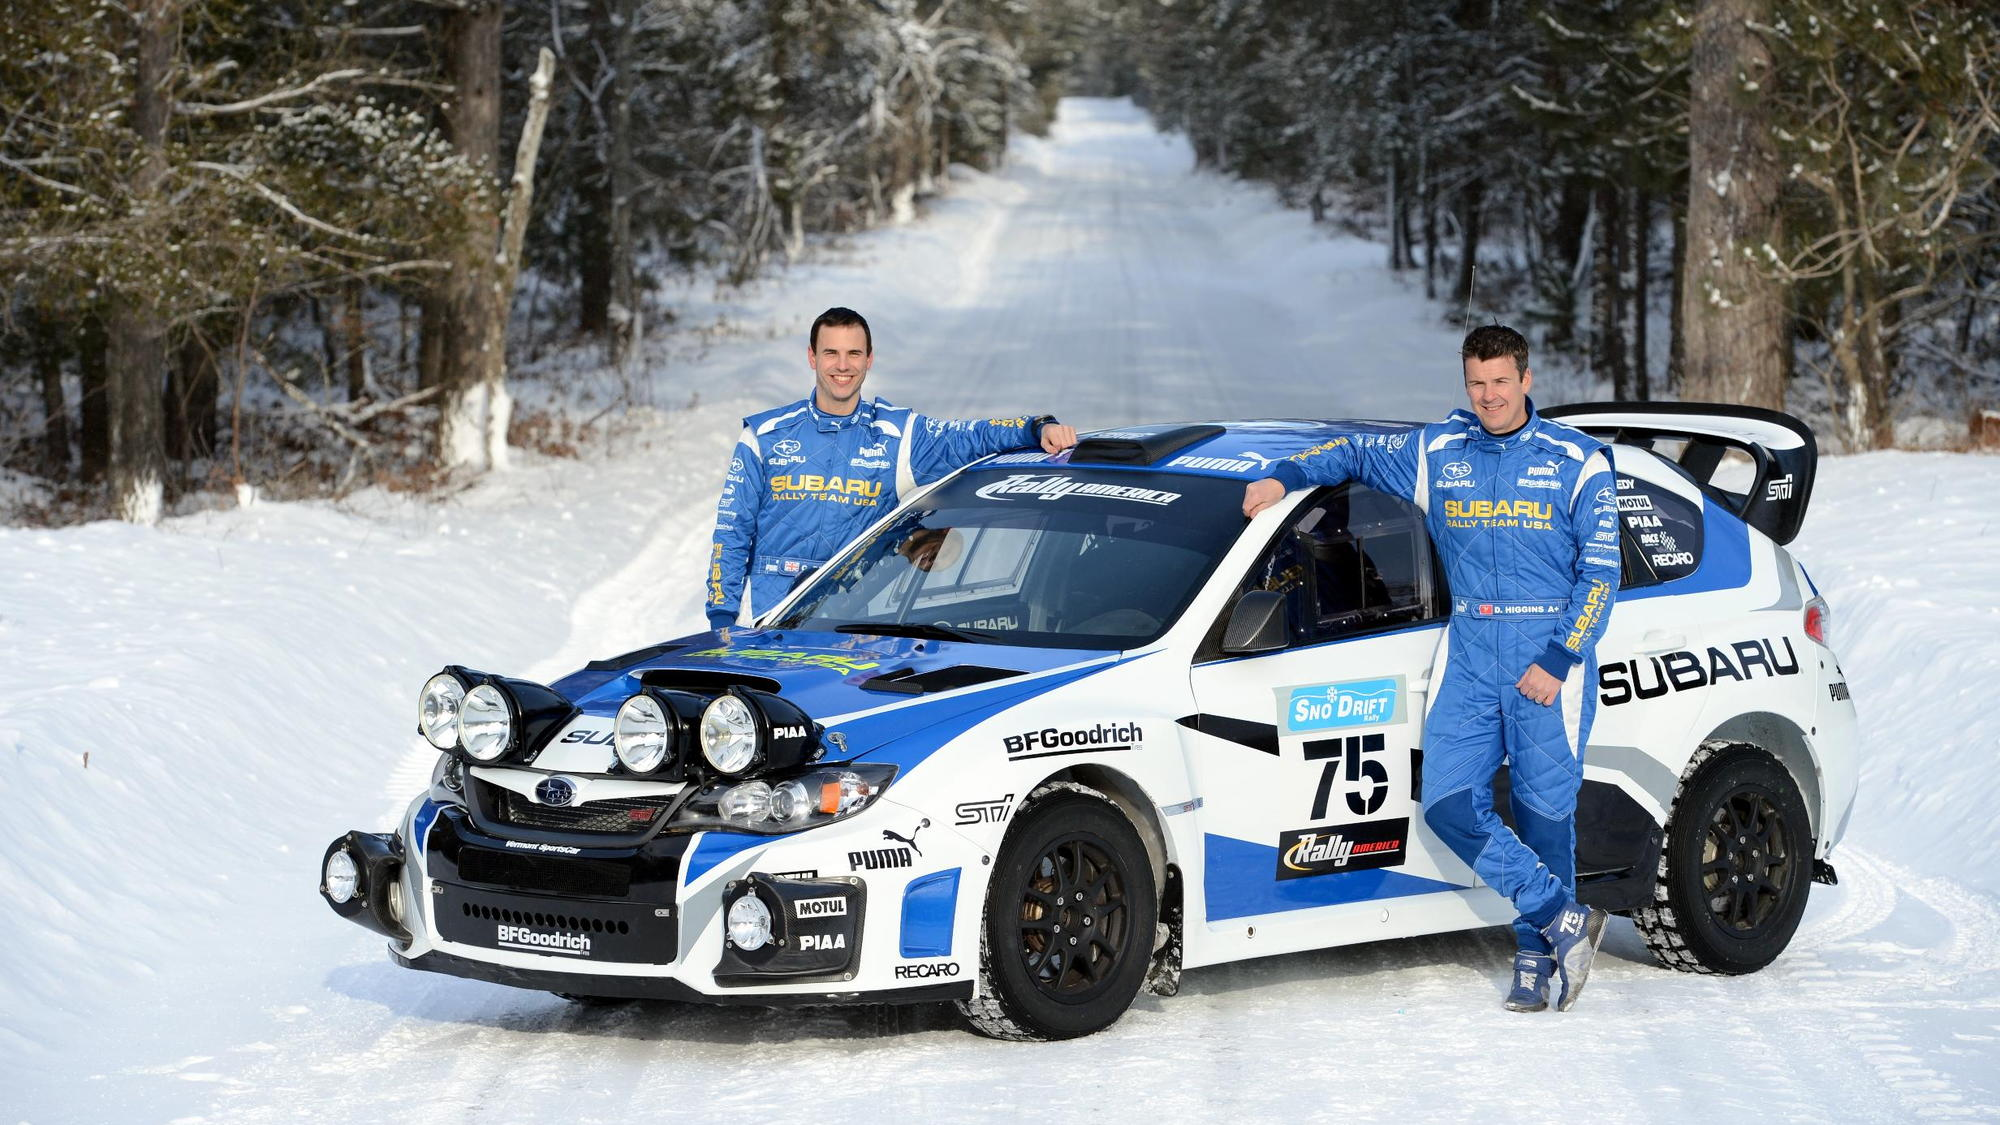 2013 Subaru Rally Team USA WRX STI rally car